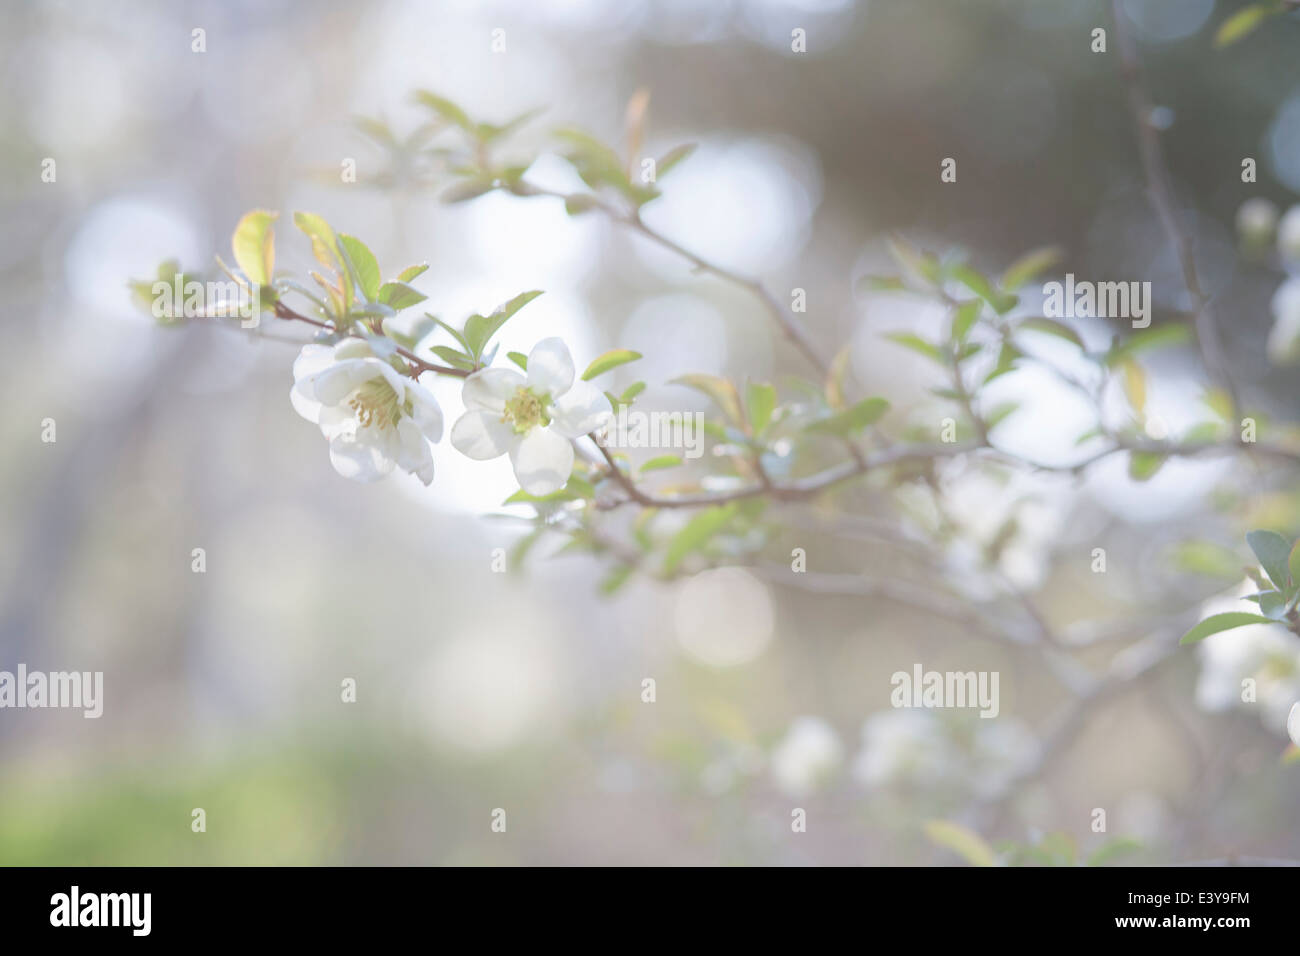 Cropped image of soft focus tree branch and blossom - Stock Image